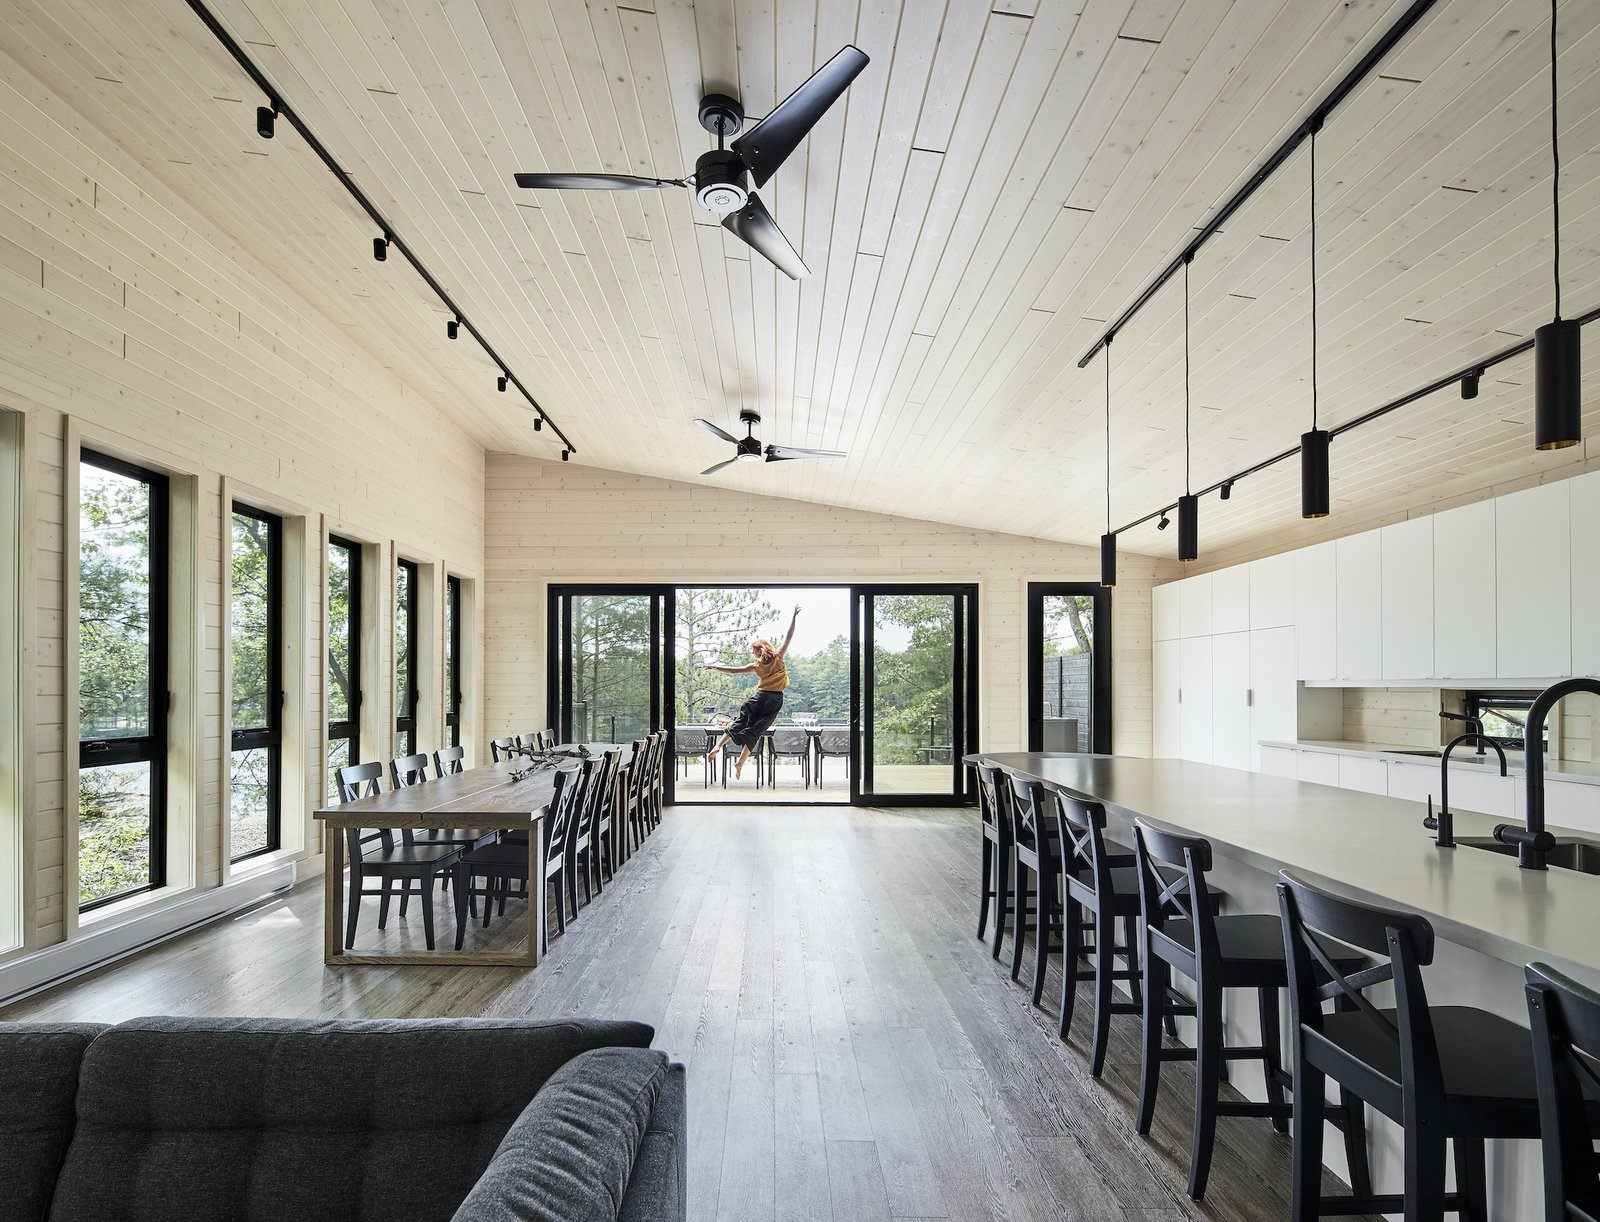 Dining room and kitchen of Kahshe Lake Cottage by Solares Architecture.